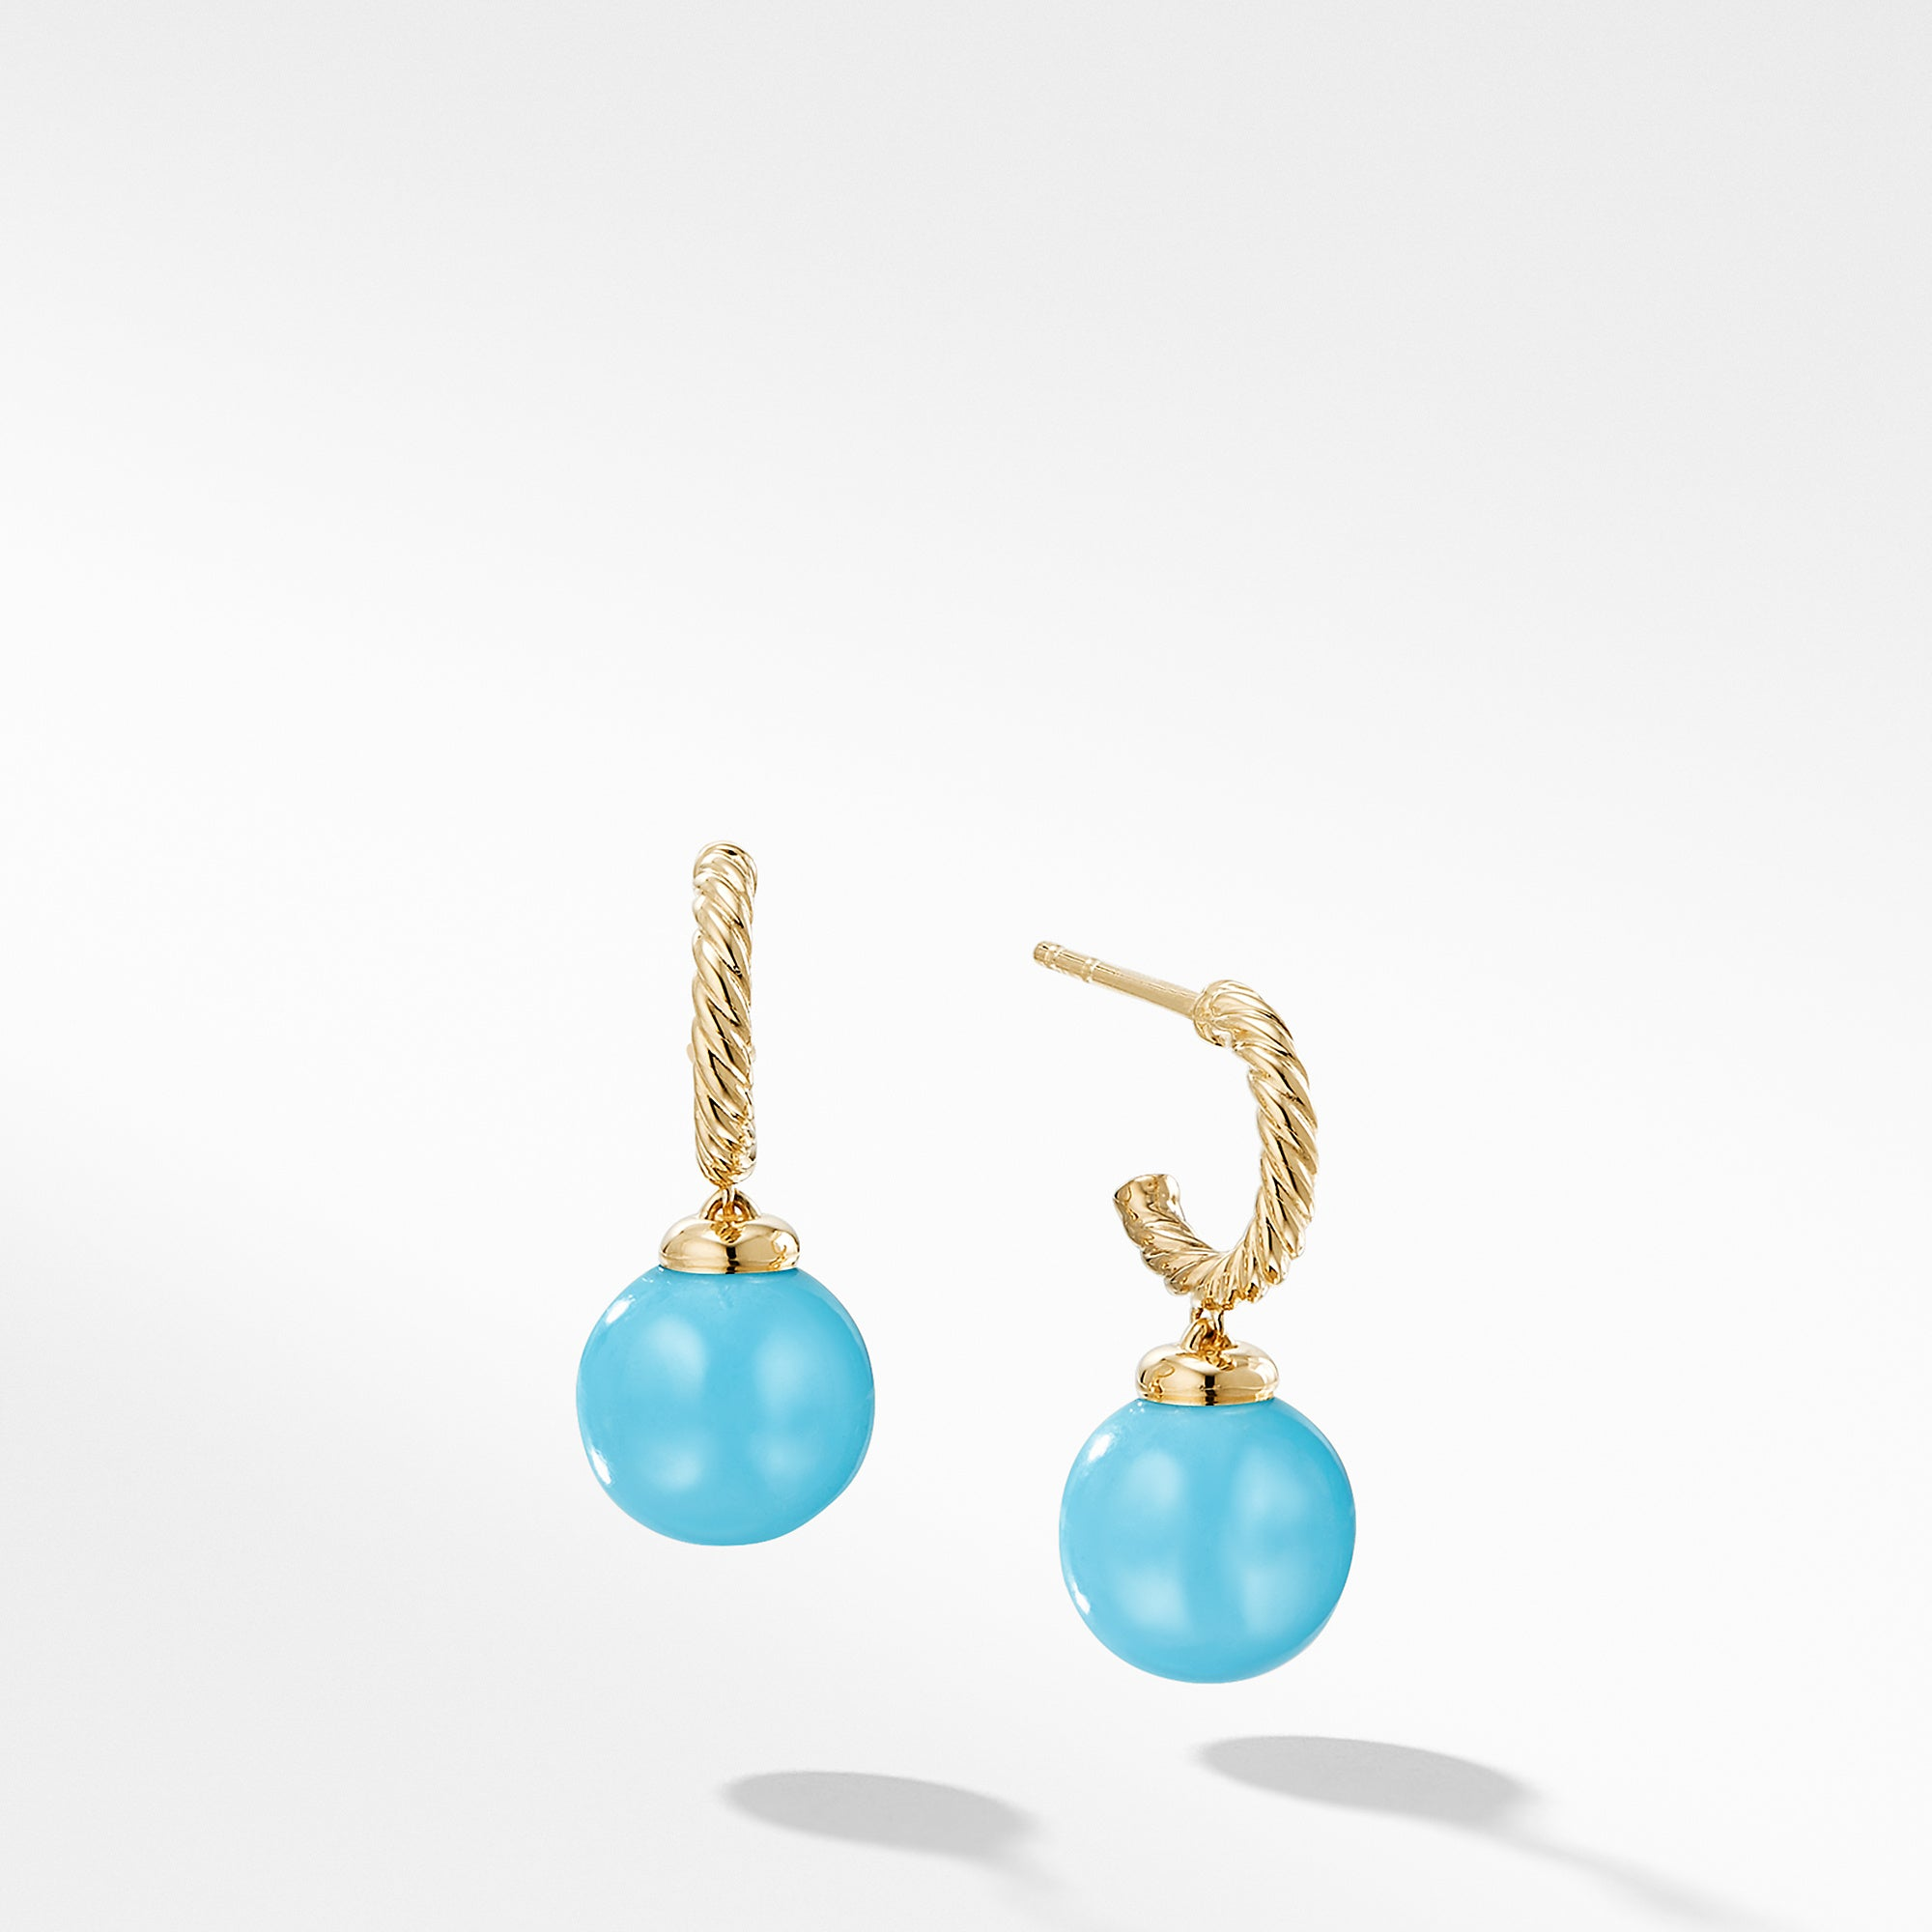 Solari Hoop Earrings with Turquoise in 18K Gold